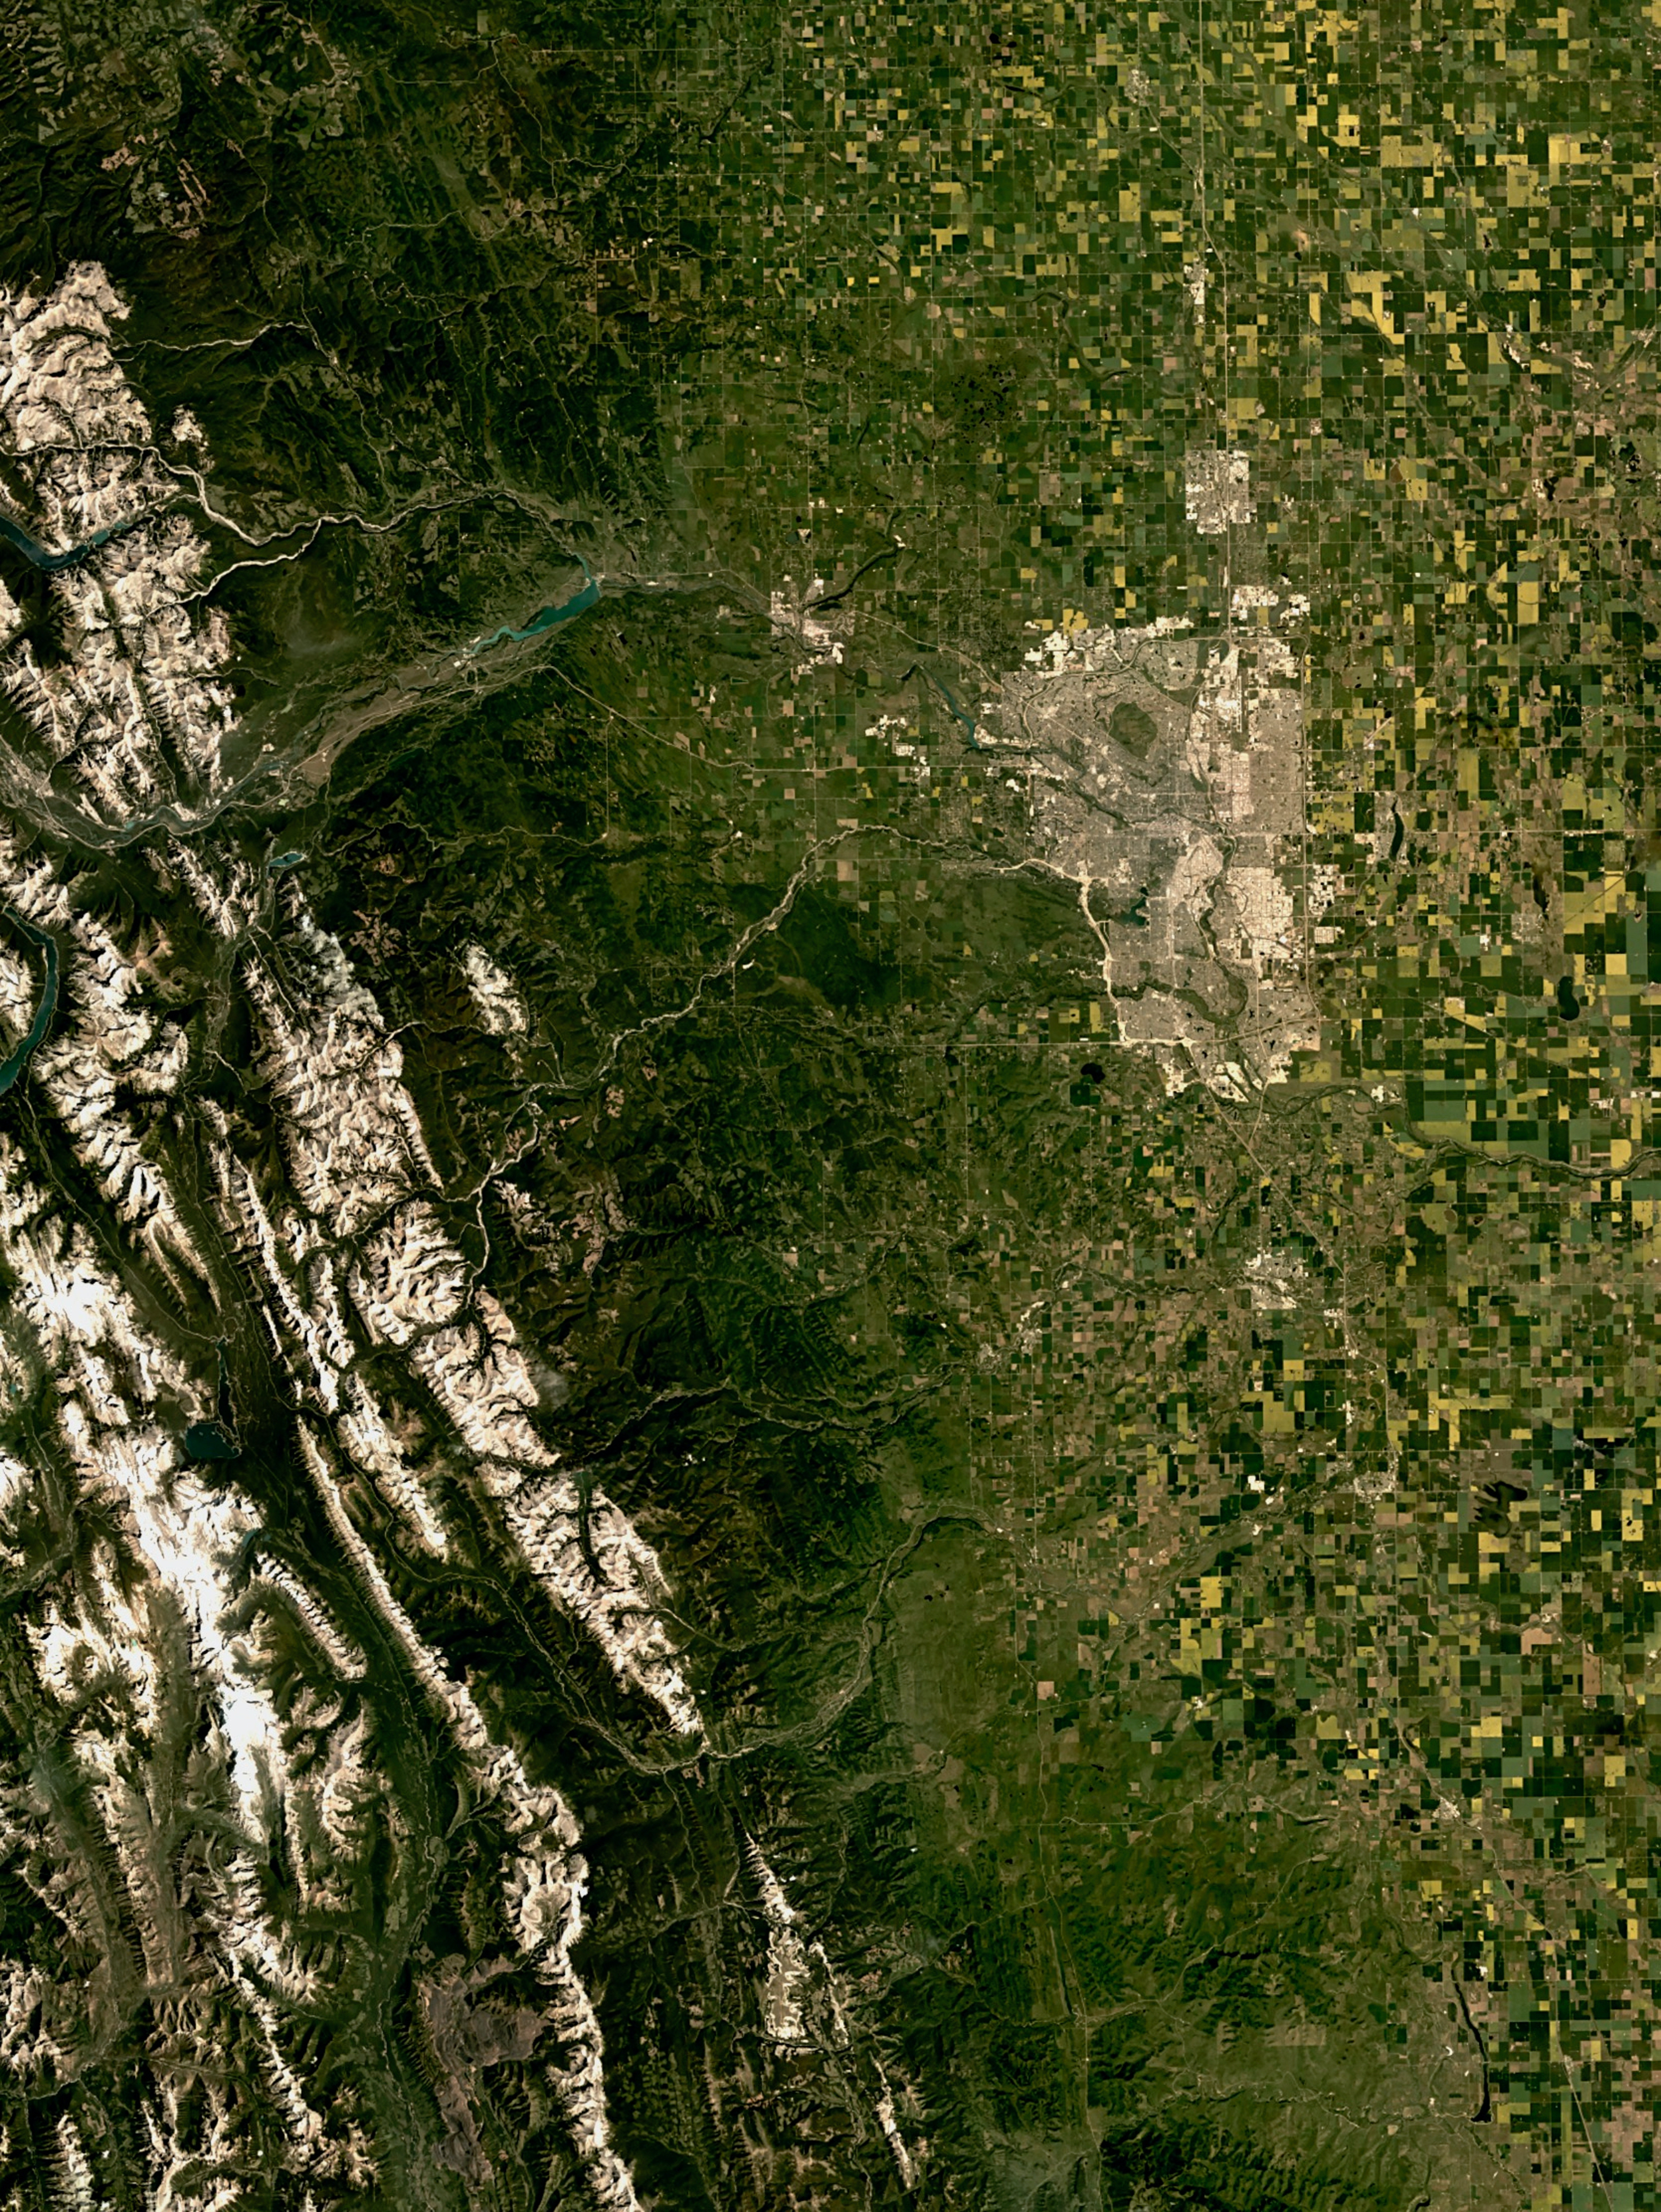 Calgary and the Canadian Rockies